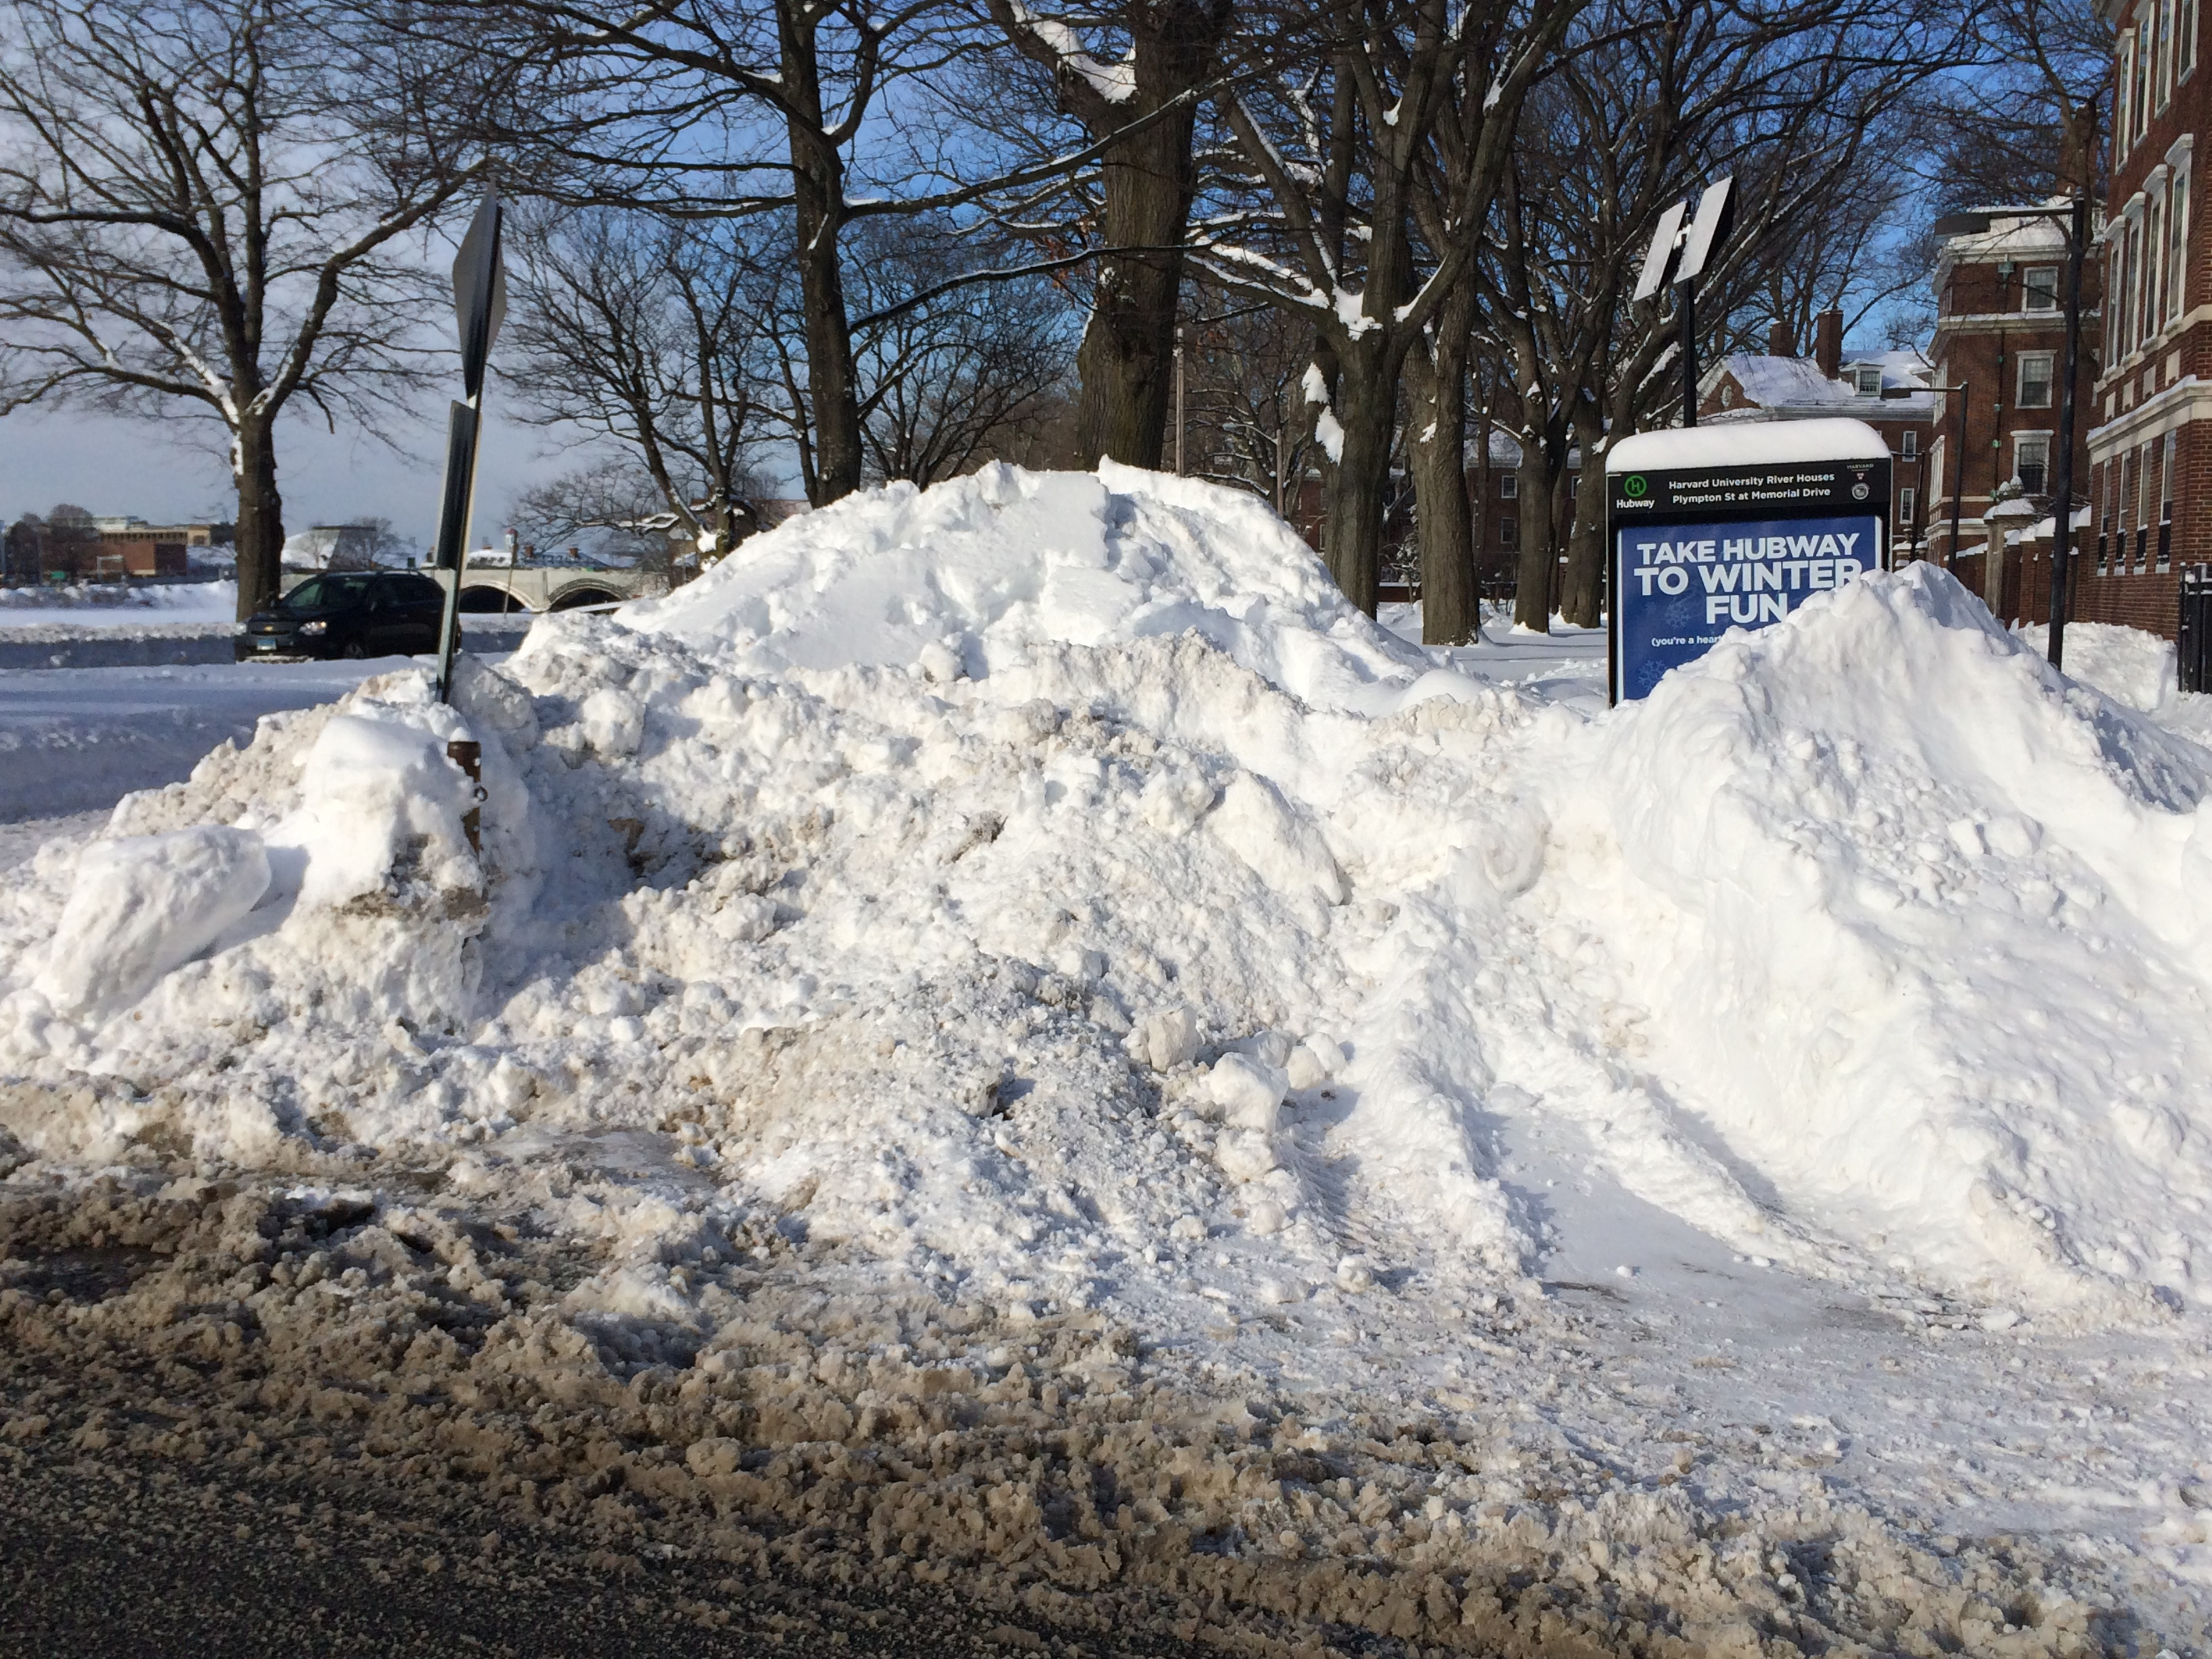 Snow Pile Pictures to Pin on Pinterest - PinsDaddy